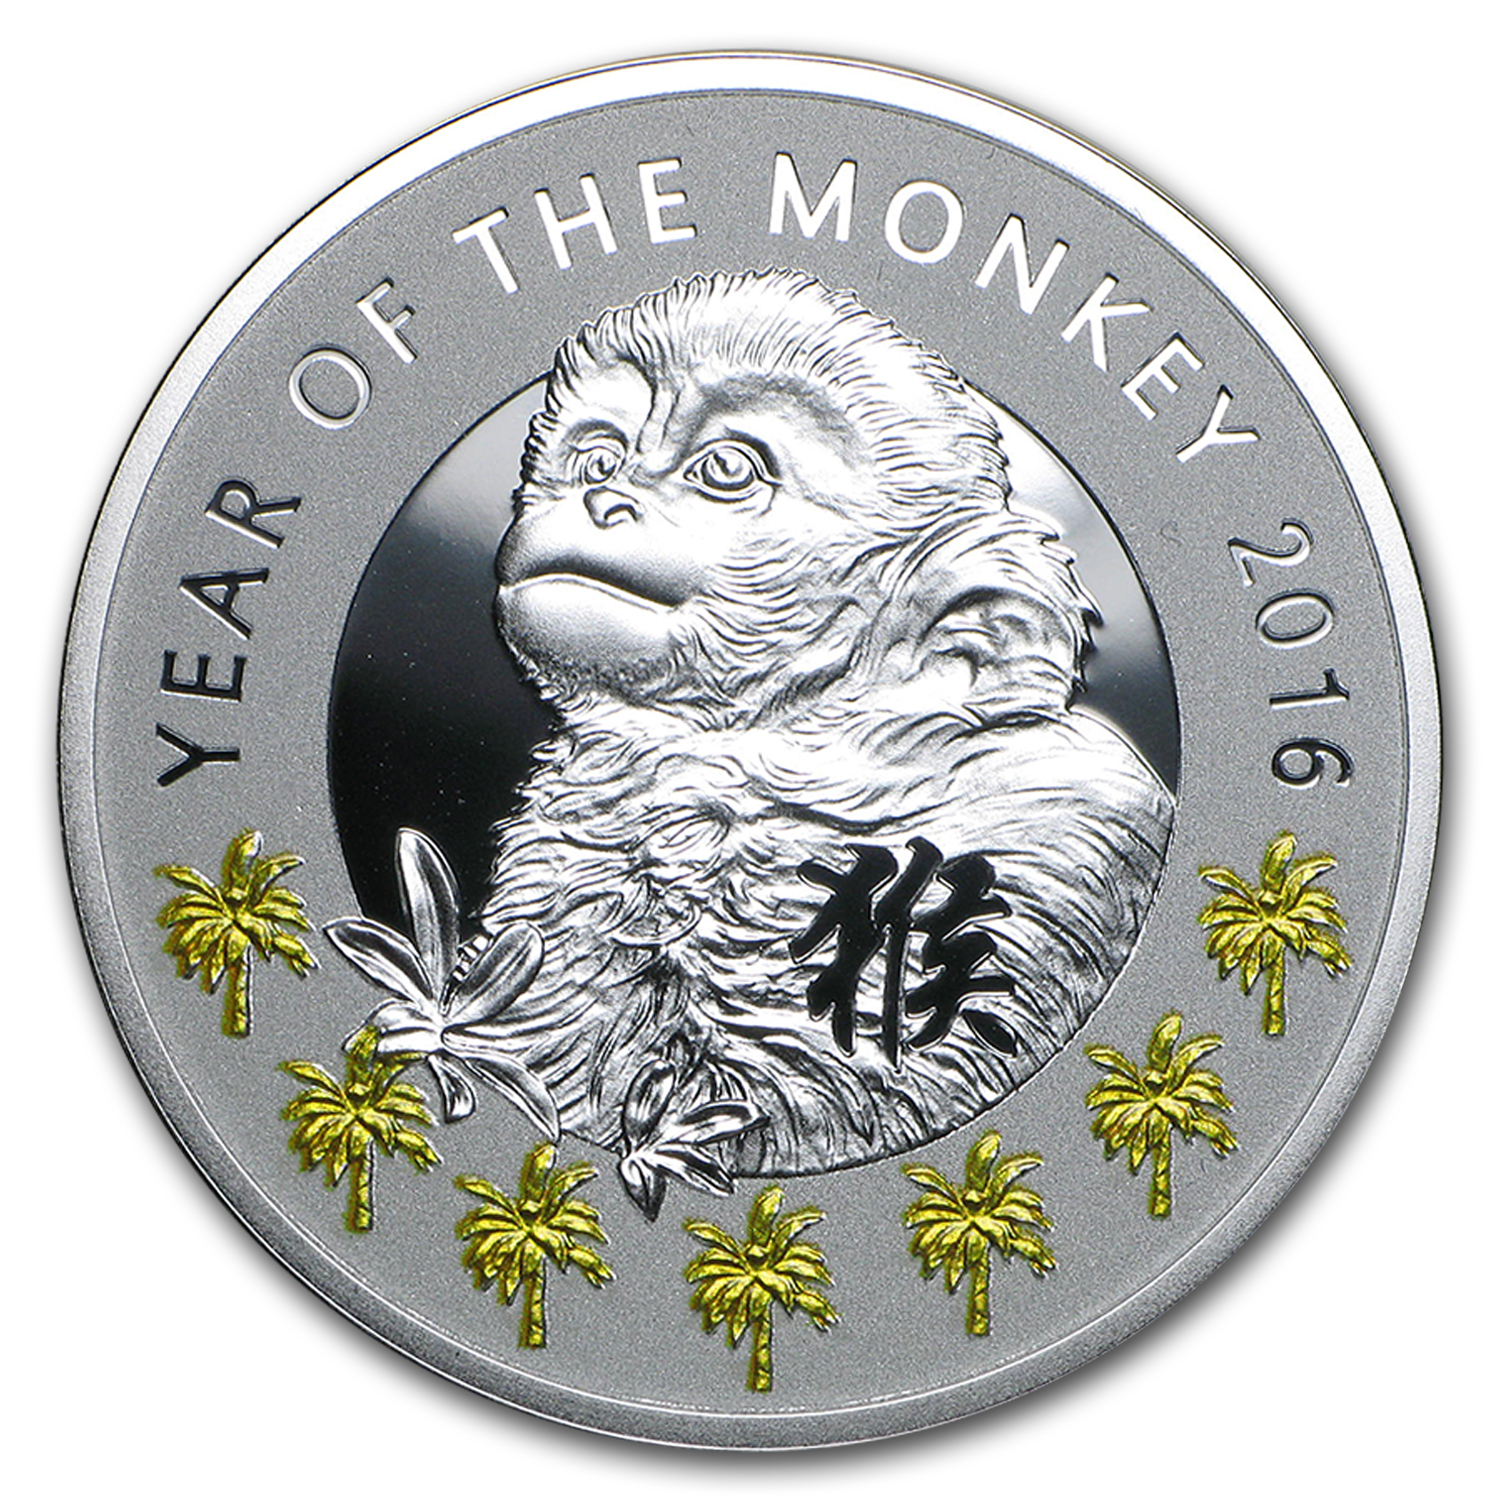 2016 Niue Silver Year of the Monkey Proof (Gilded)